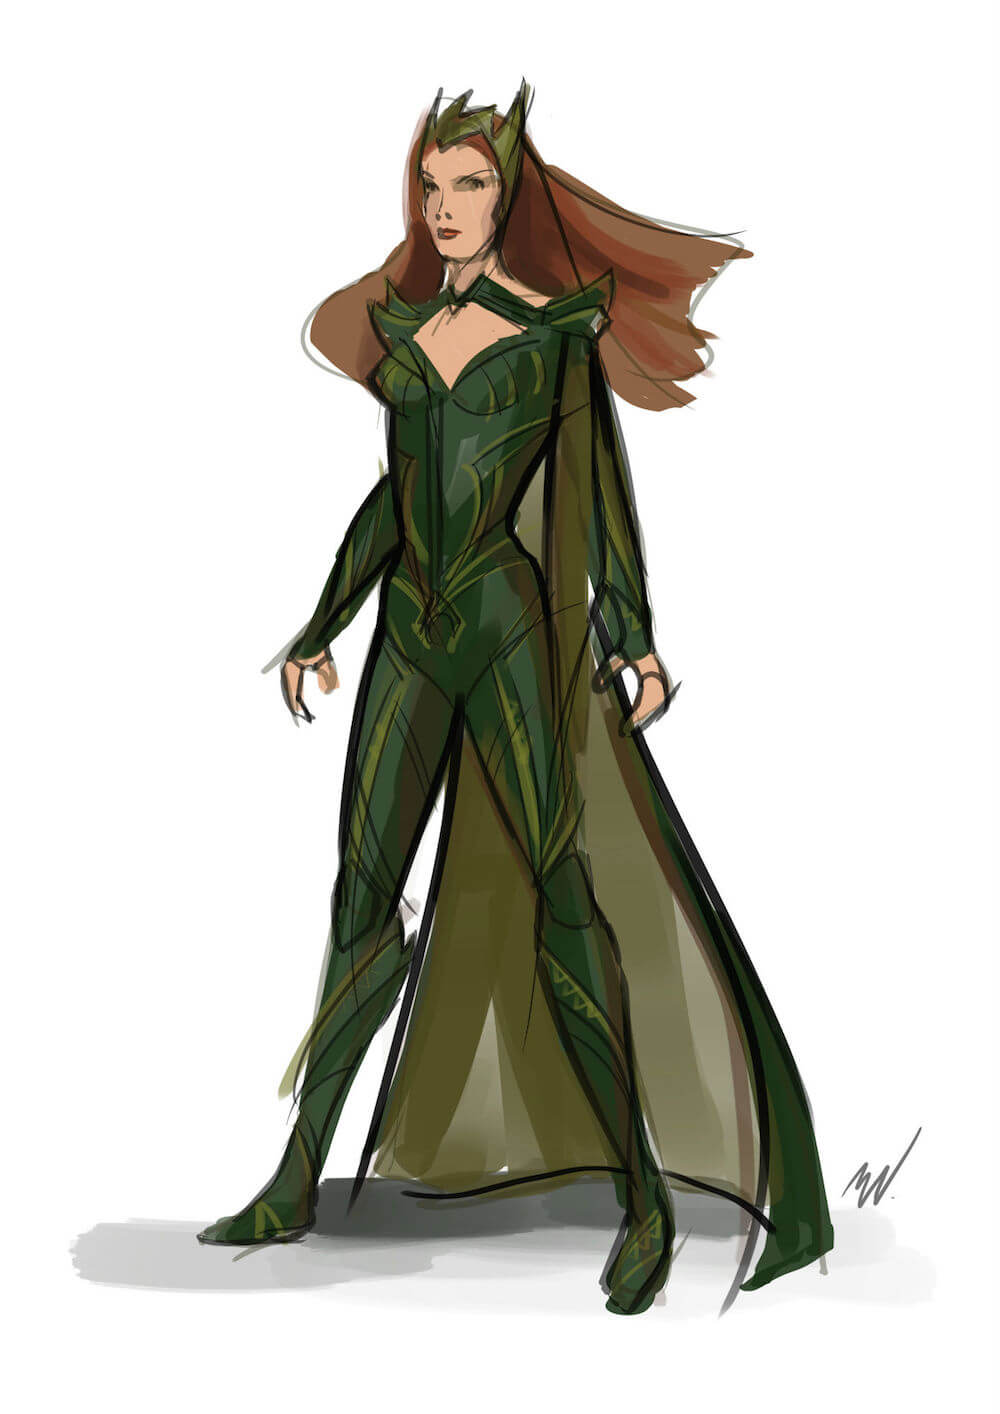 Mera Michael Sketch